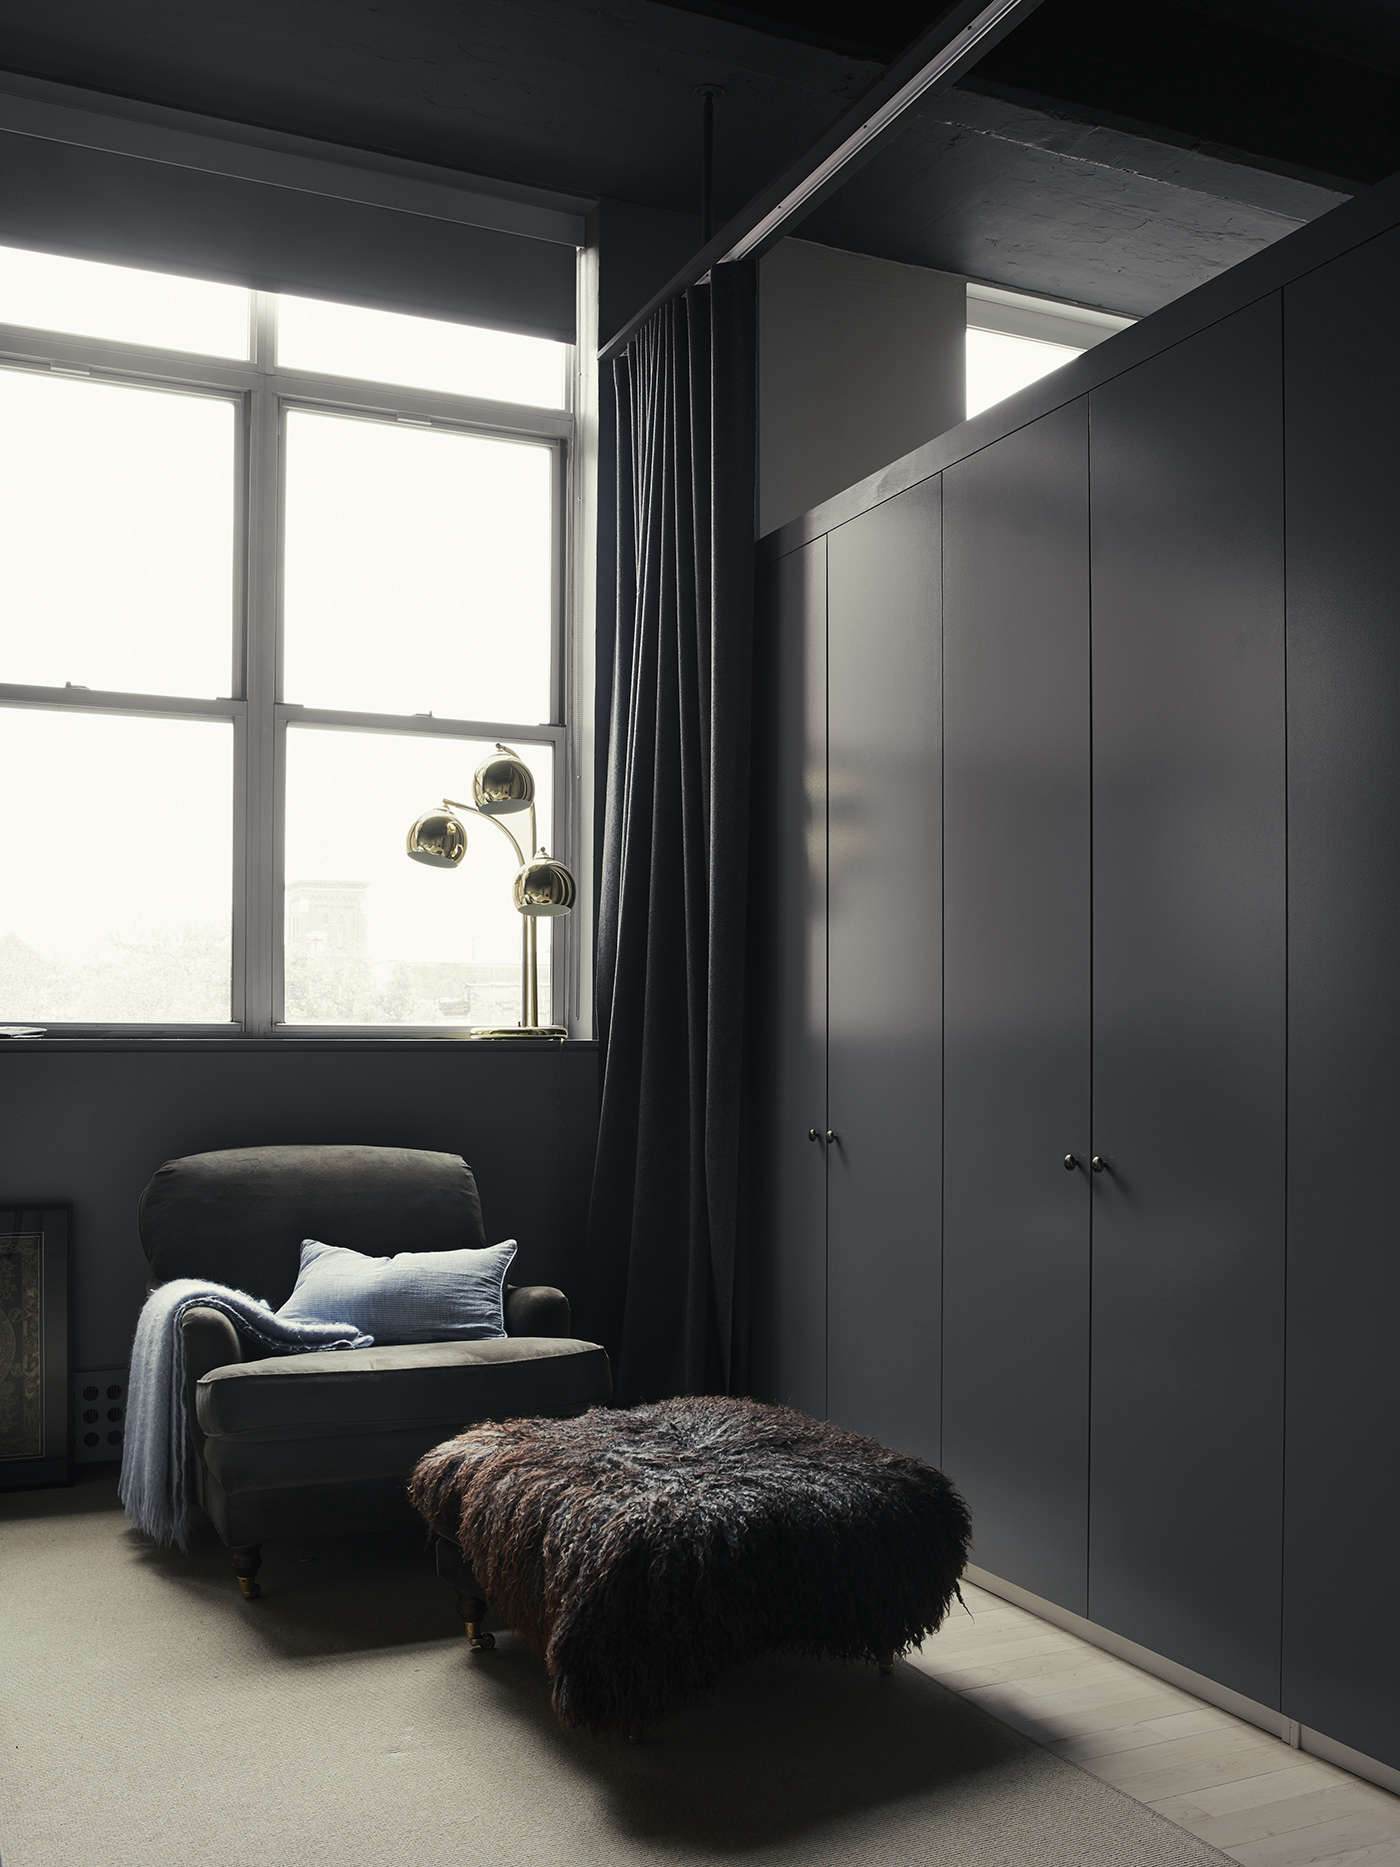 Built-in bedroom closets in photographer Pia Ulin's Brooklyn loft designed by Bangia Agostinho Architecture |Remodelista